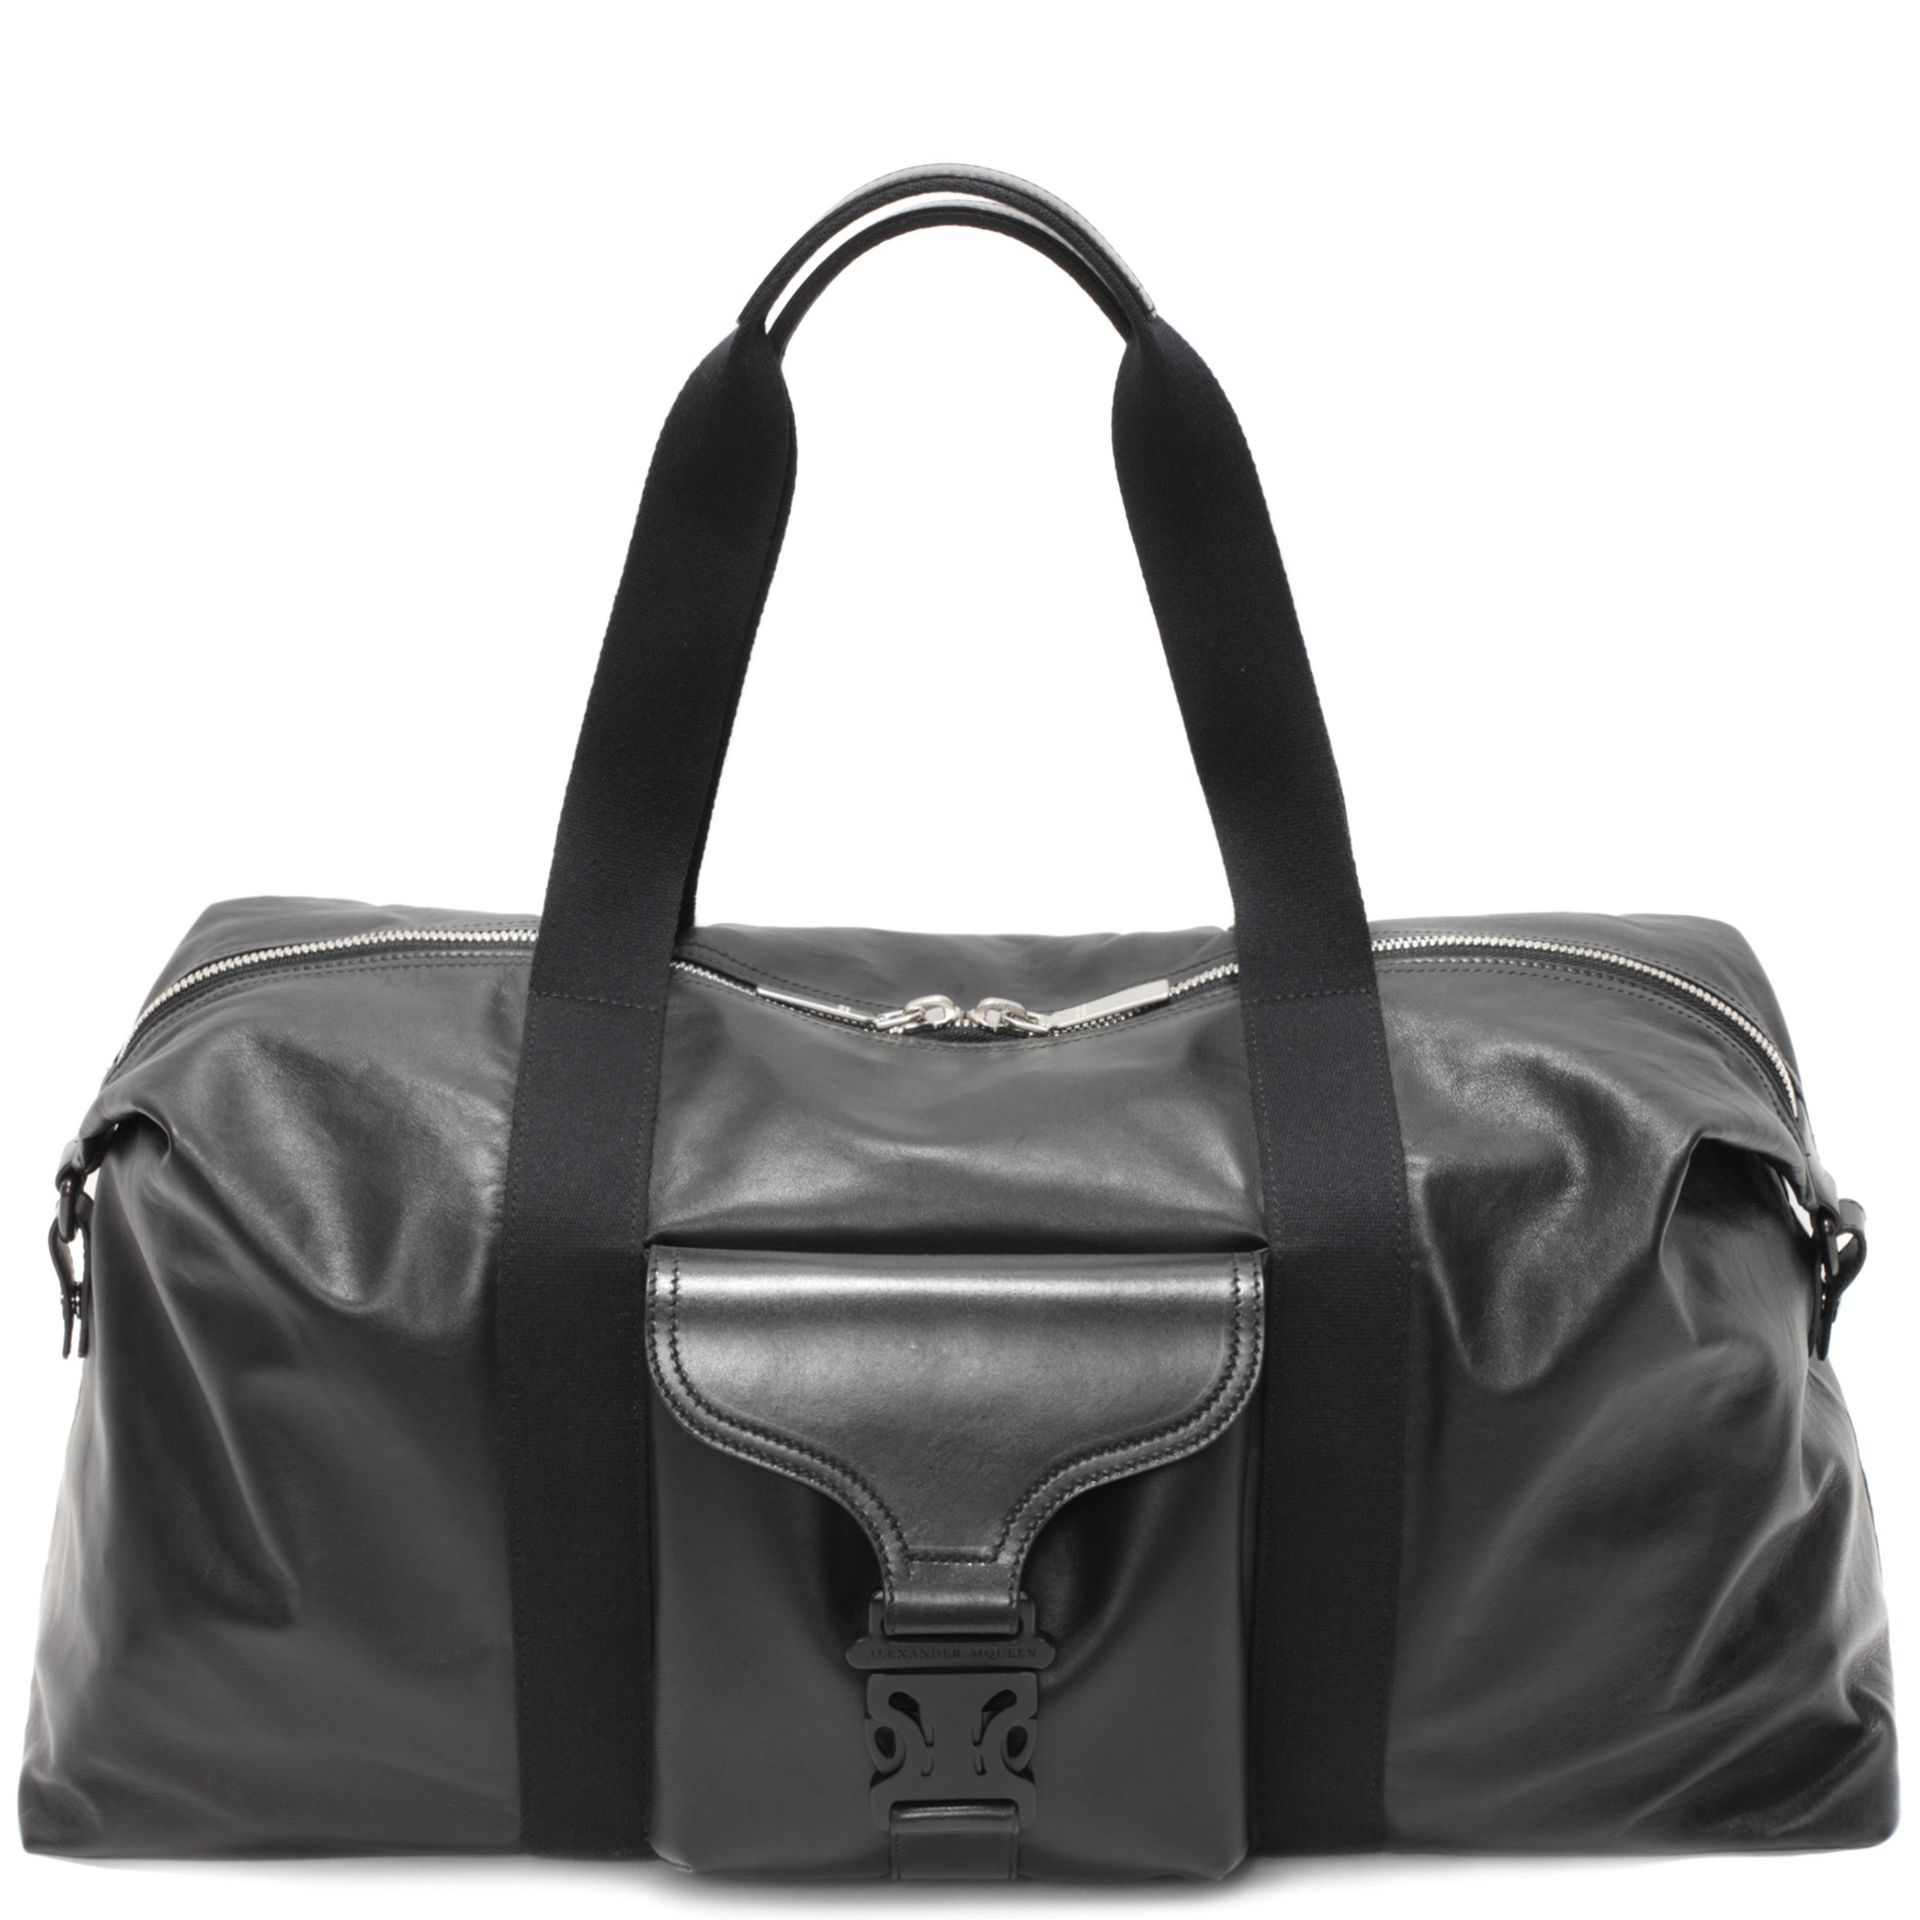 a3f457ad9097 Lyst - Alexander Mcqueen Leather Tech Gym Bag in Black